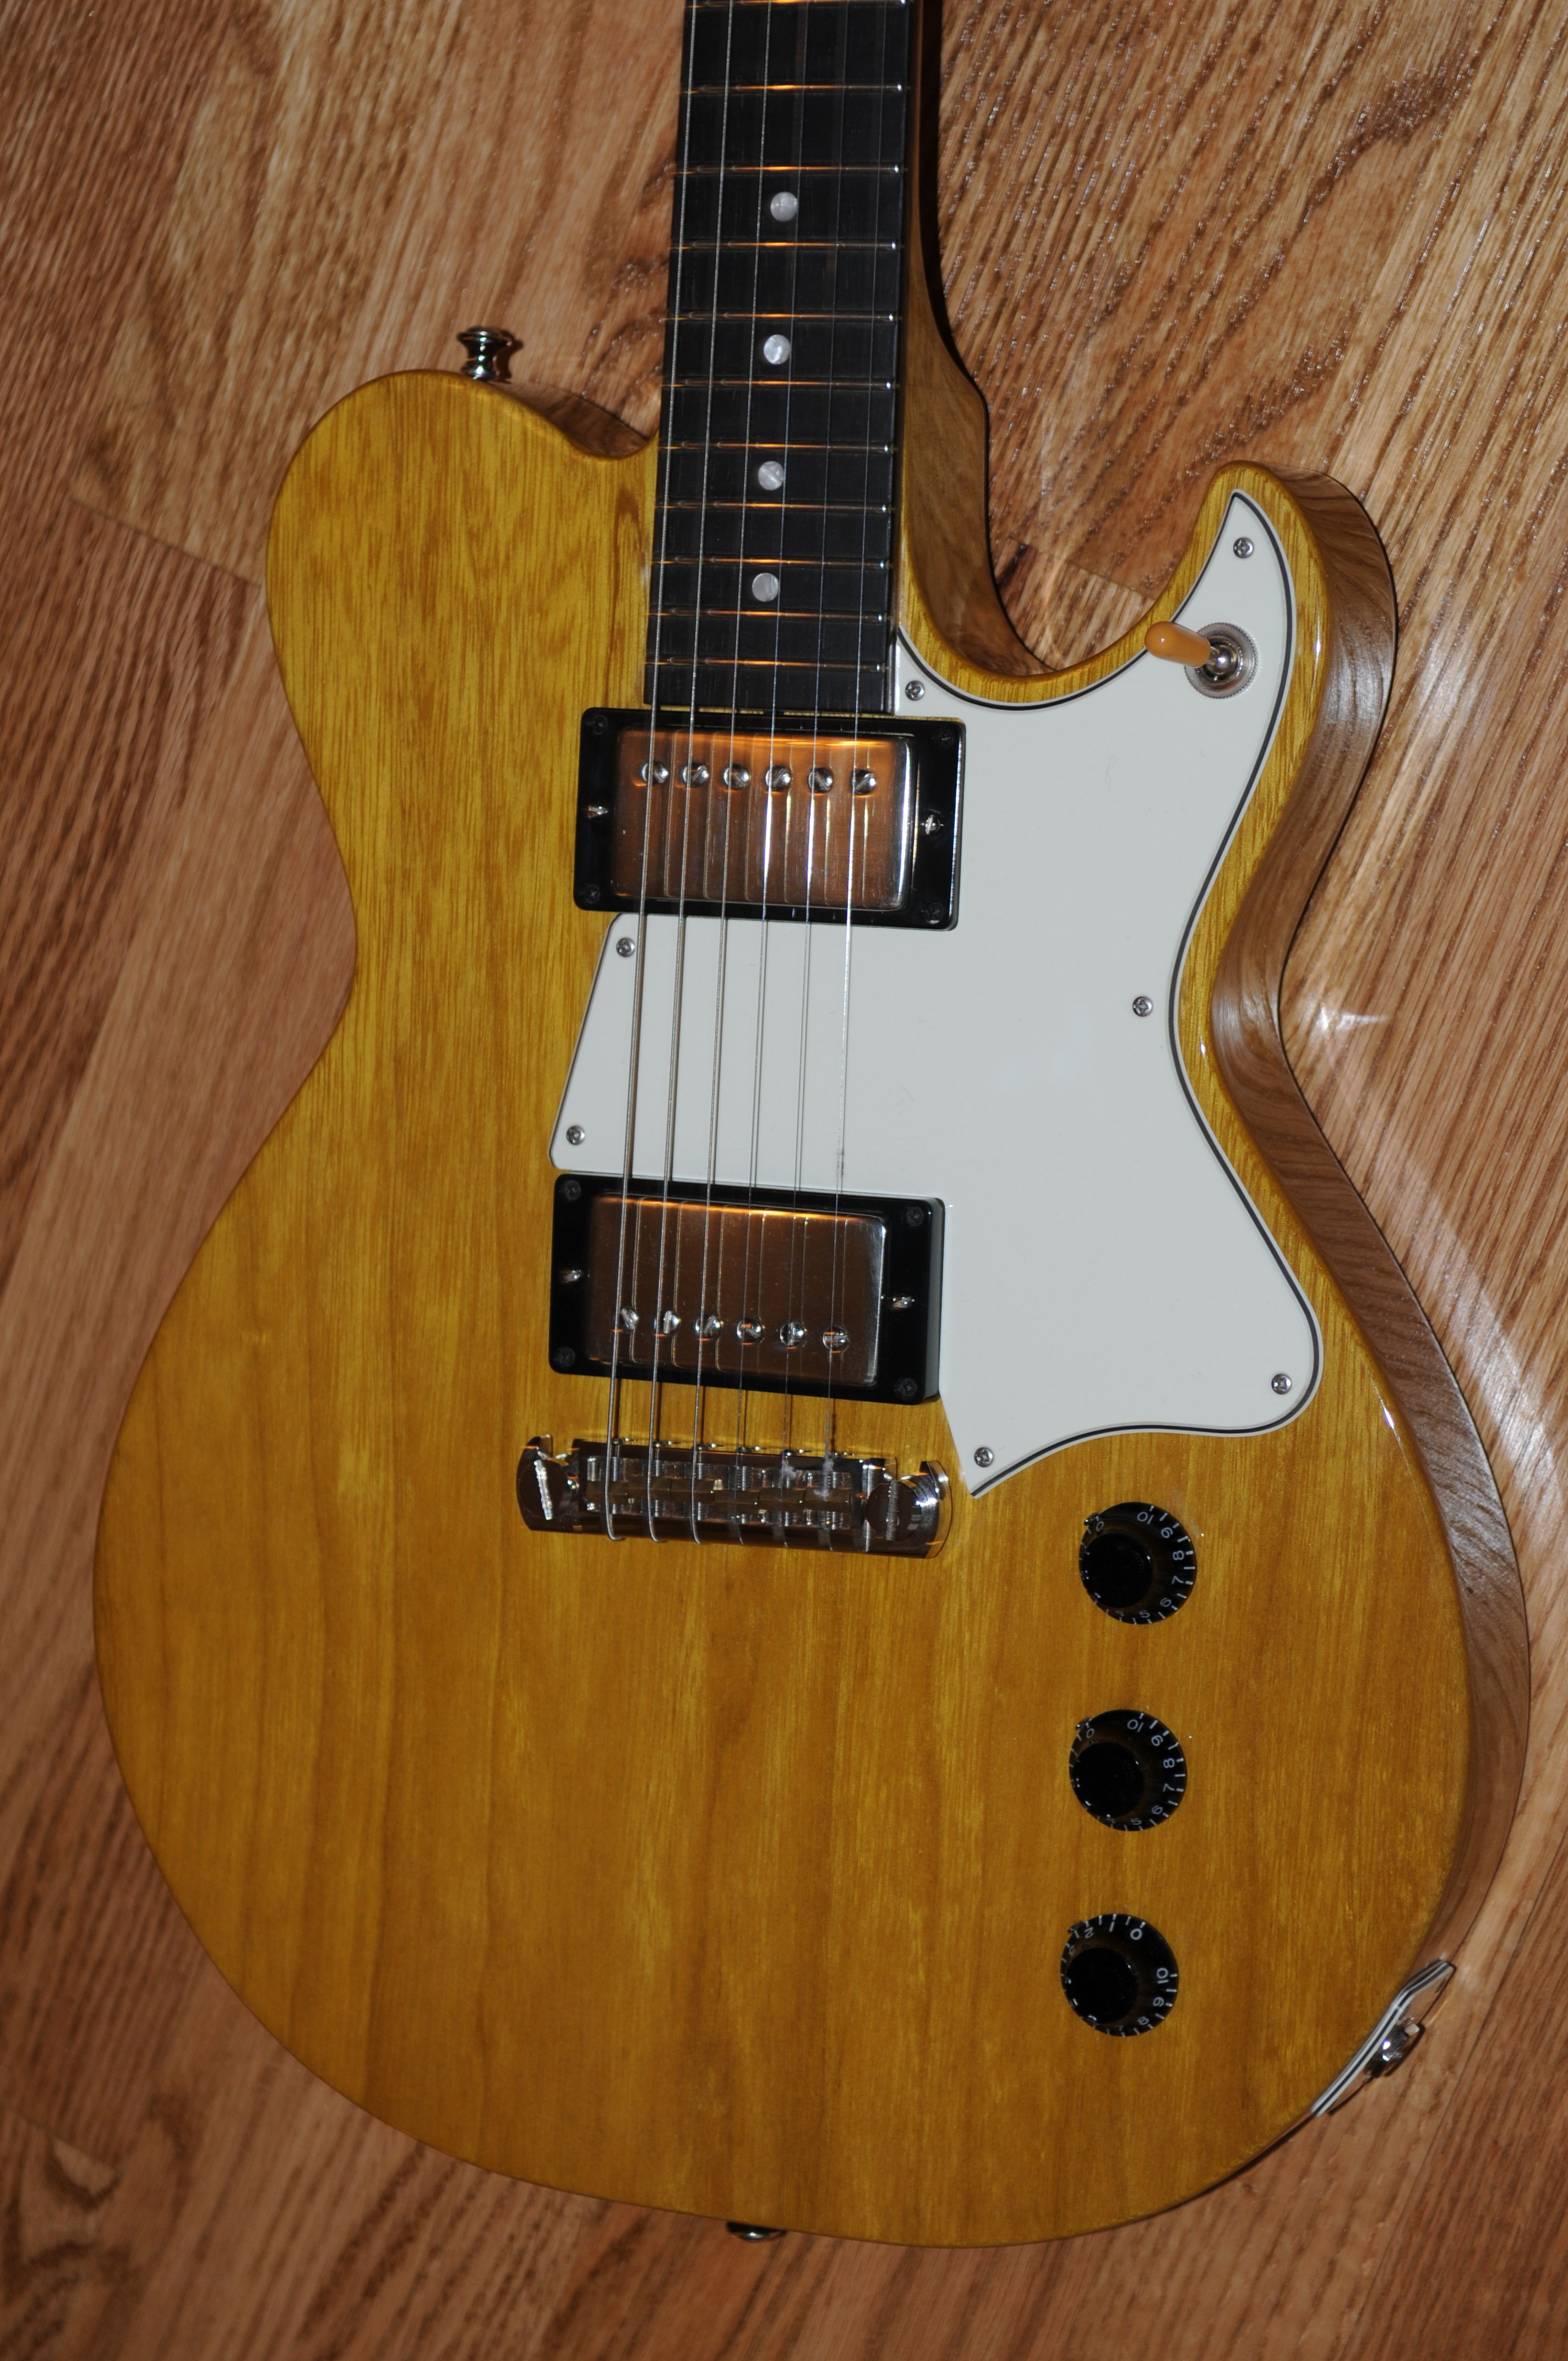 2011 Gustavsson FUTUREMASTER – yes another